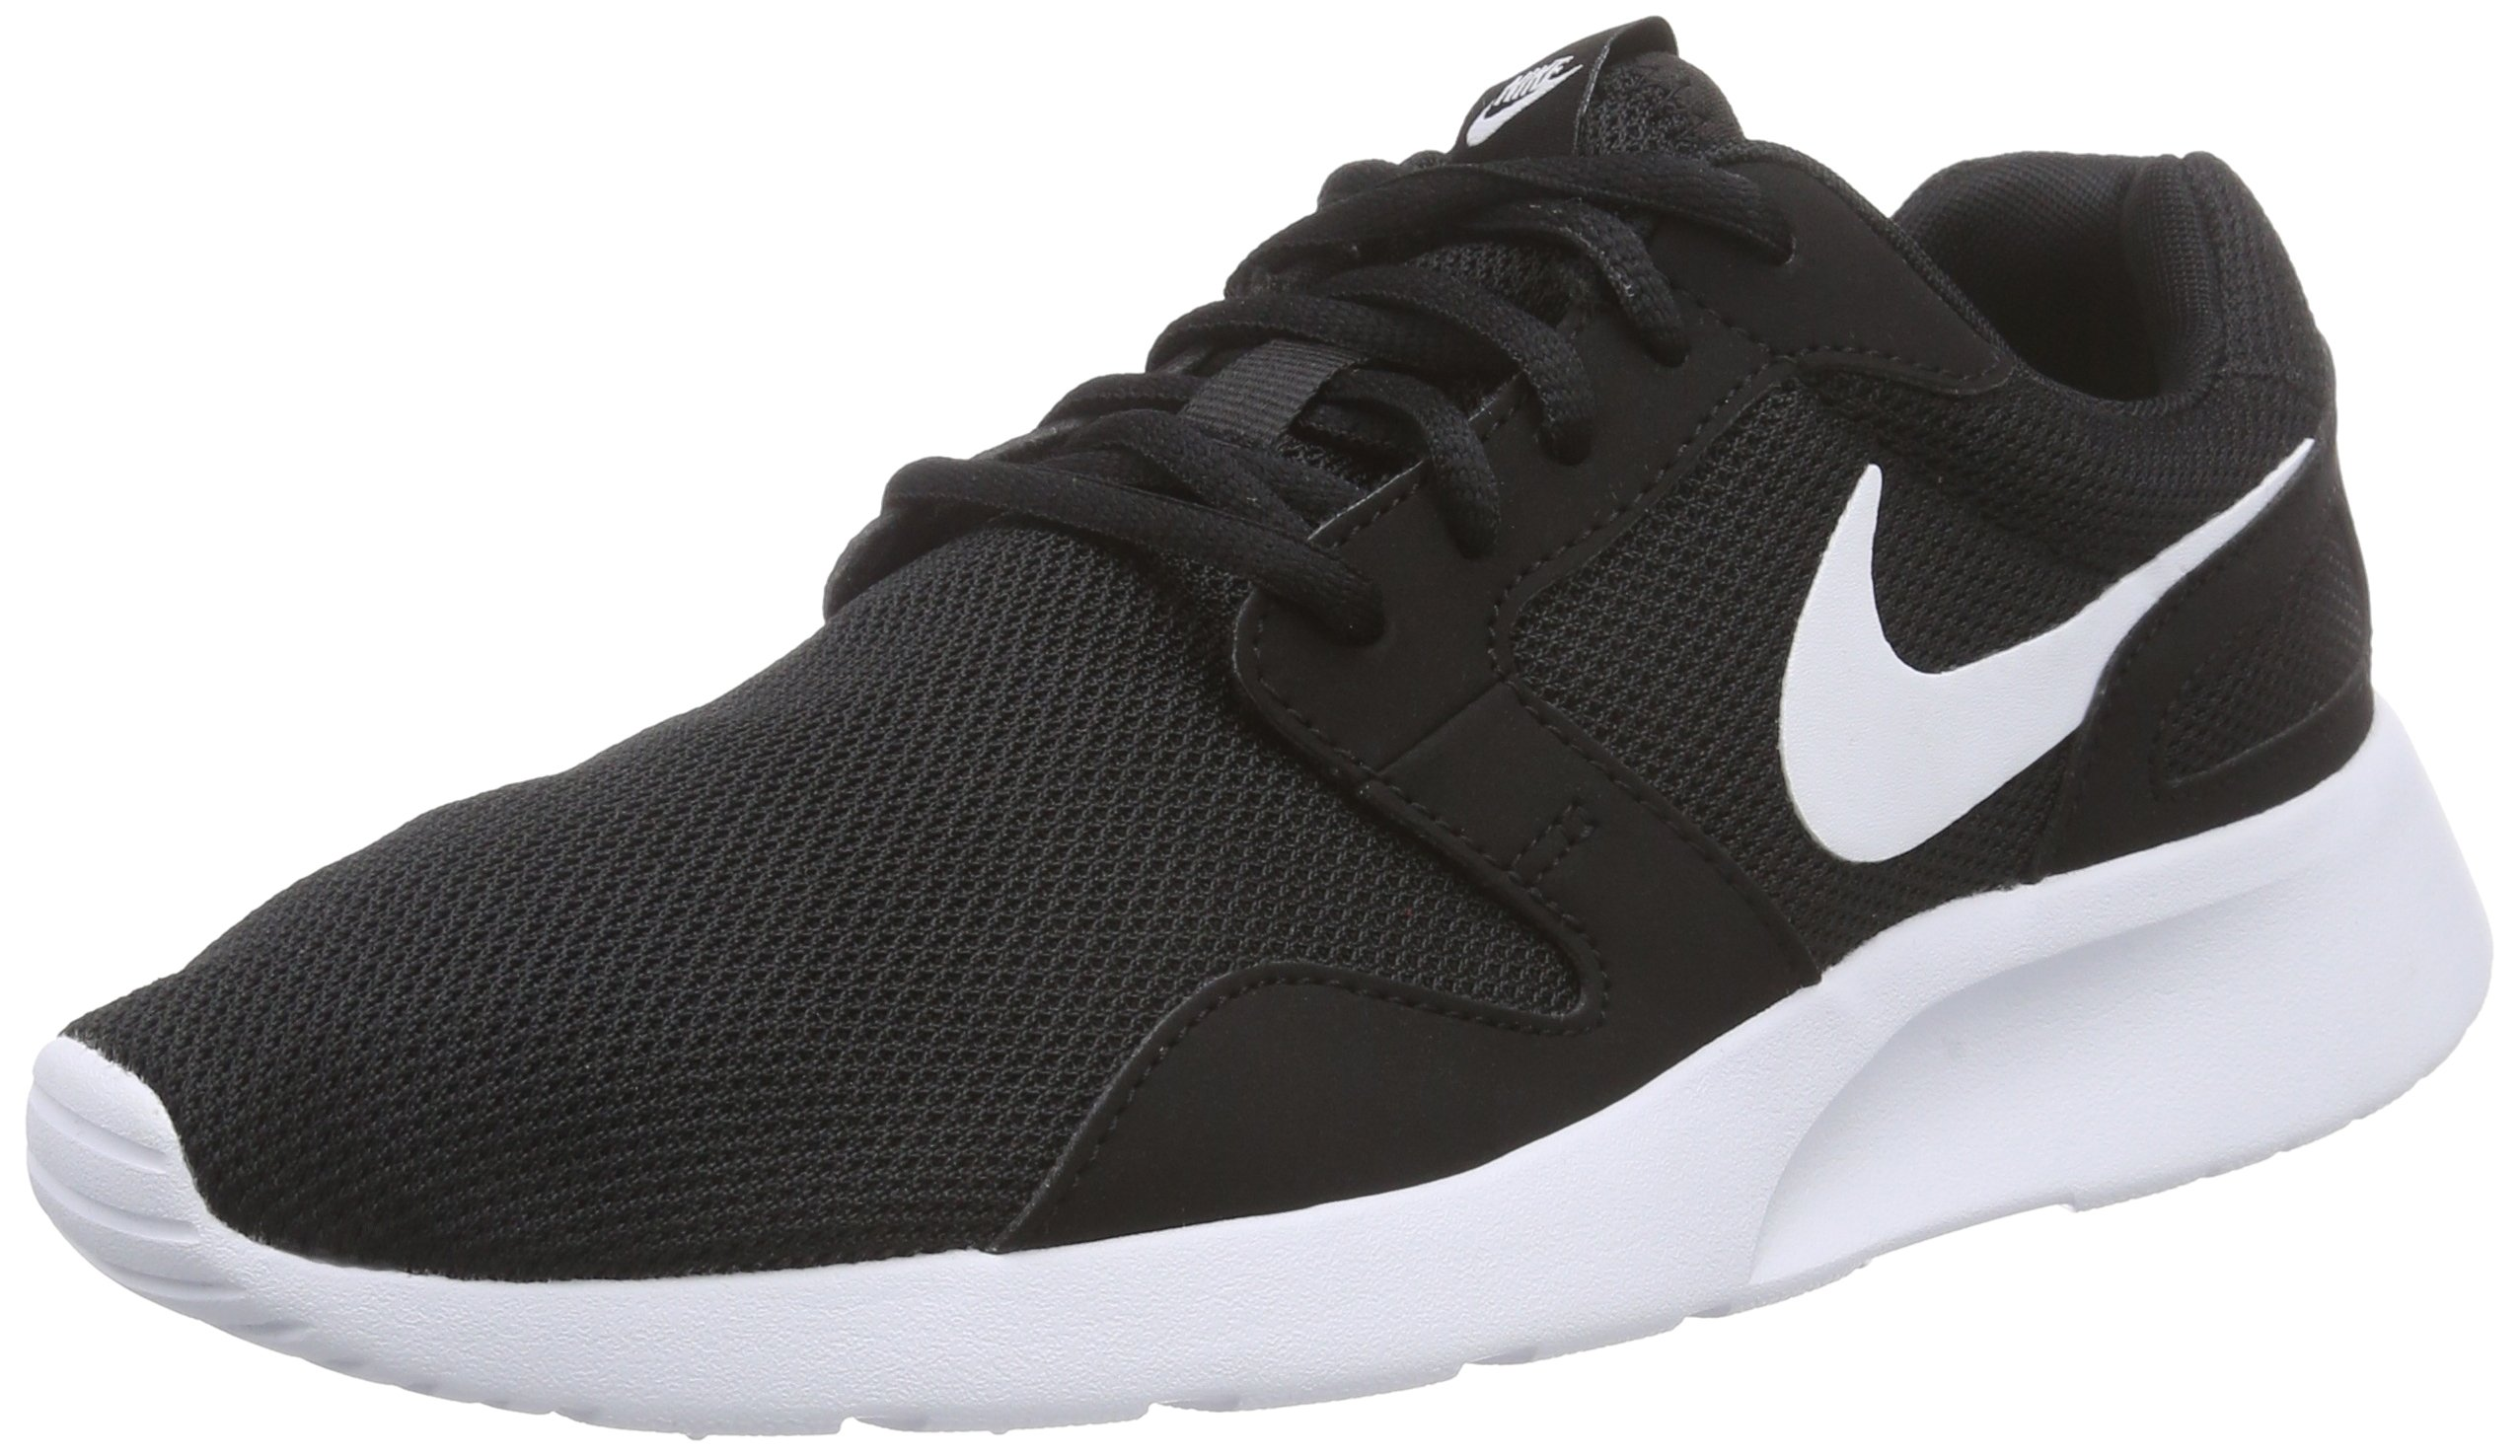 separation shoes dd413 27b22 Galleon - Nike Men s Kaishi Running Sneaker - Black - 11 D(M) US